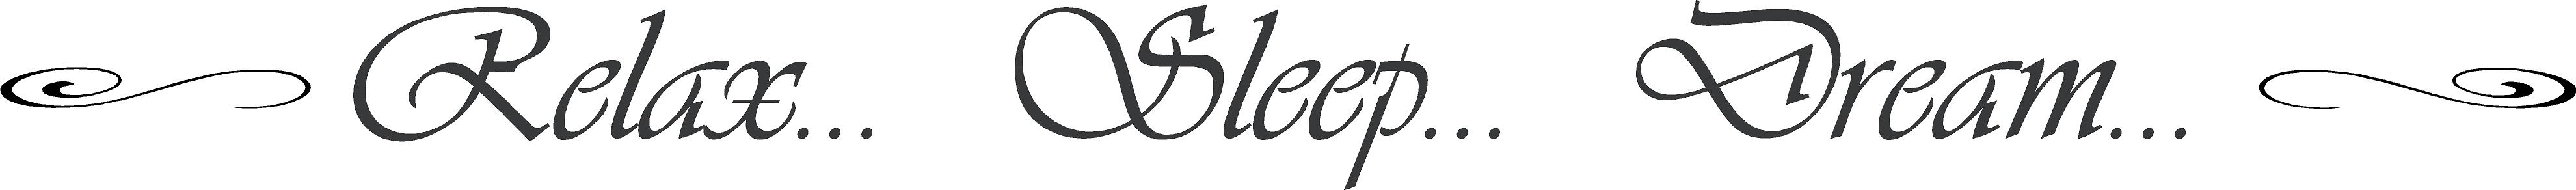 Relax Sleep Dream | Wall Decals